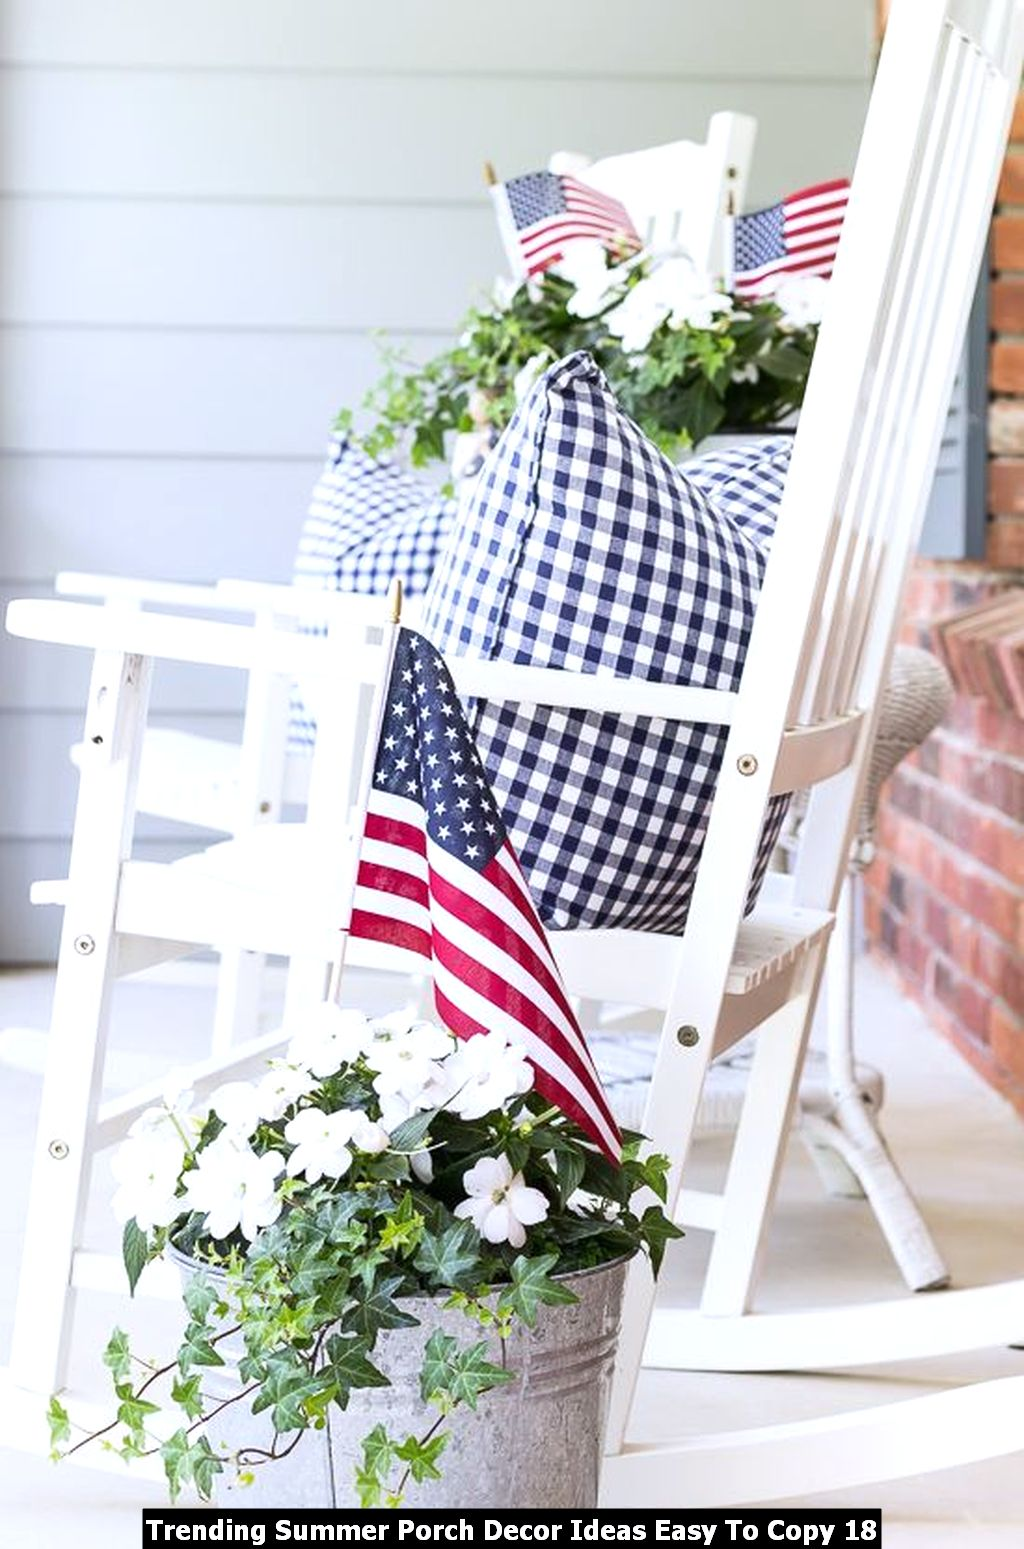 Trending Summer Porch Decor Ideas Easy To Copy 18